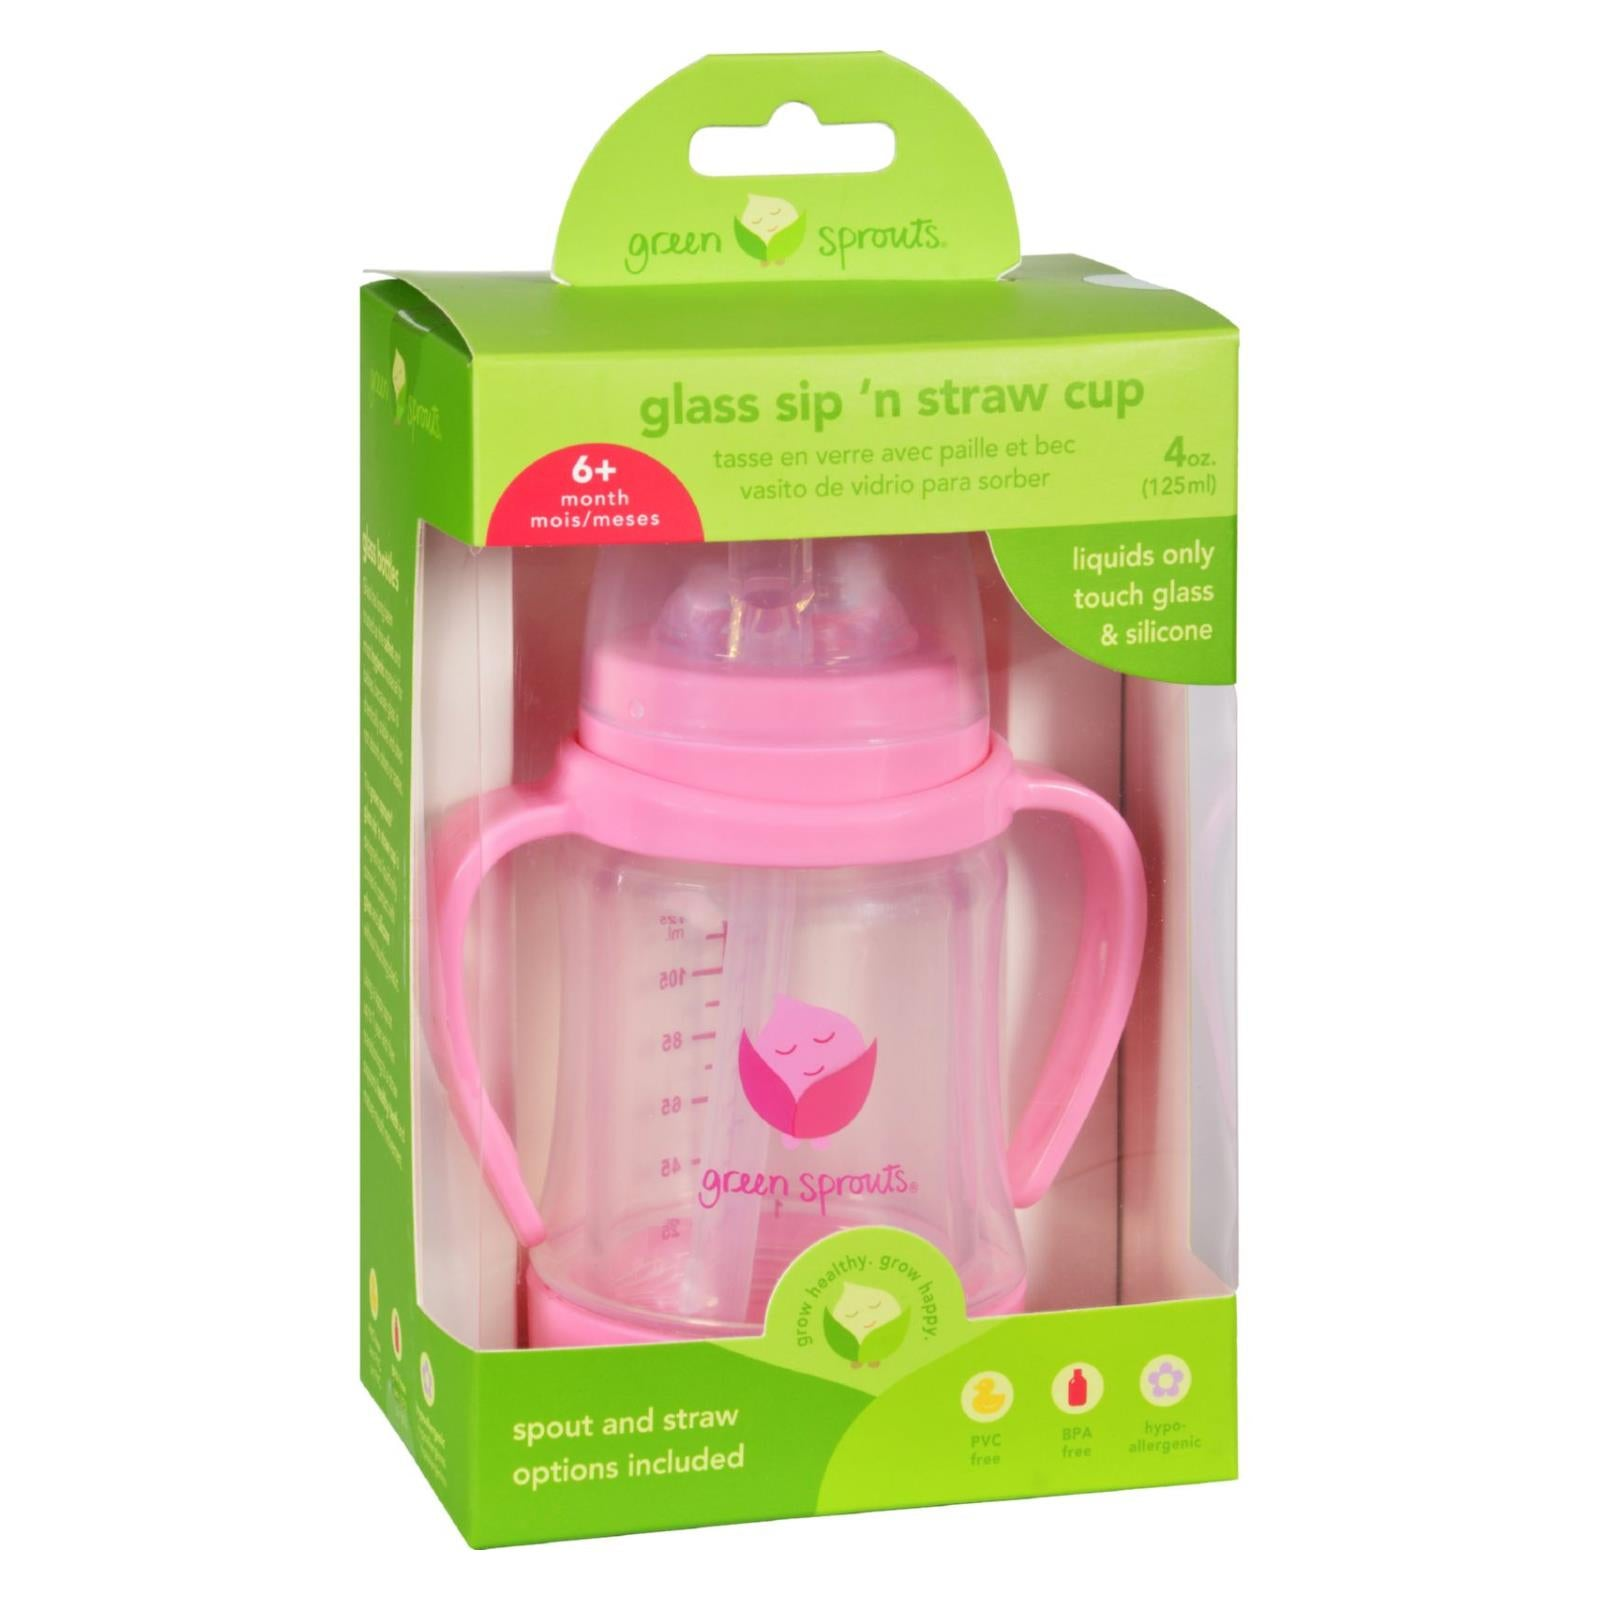 Buy Green Sprouts Cup - Sip N Straw - Glass - 6 Months Plus - Pink - 1 Count - Bottles and Cups from Veroeco.com